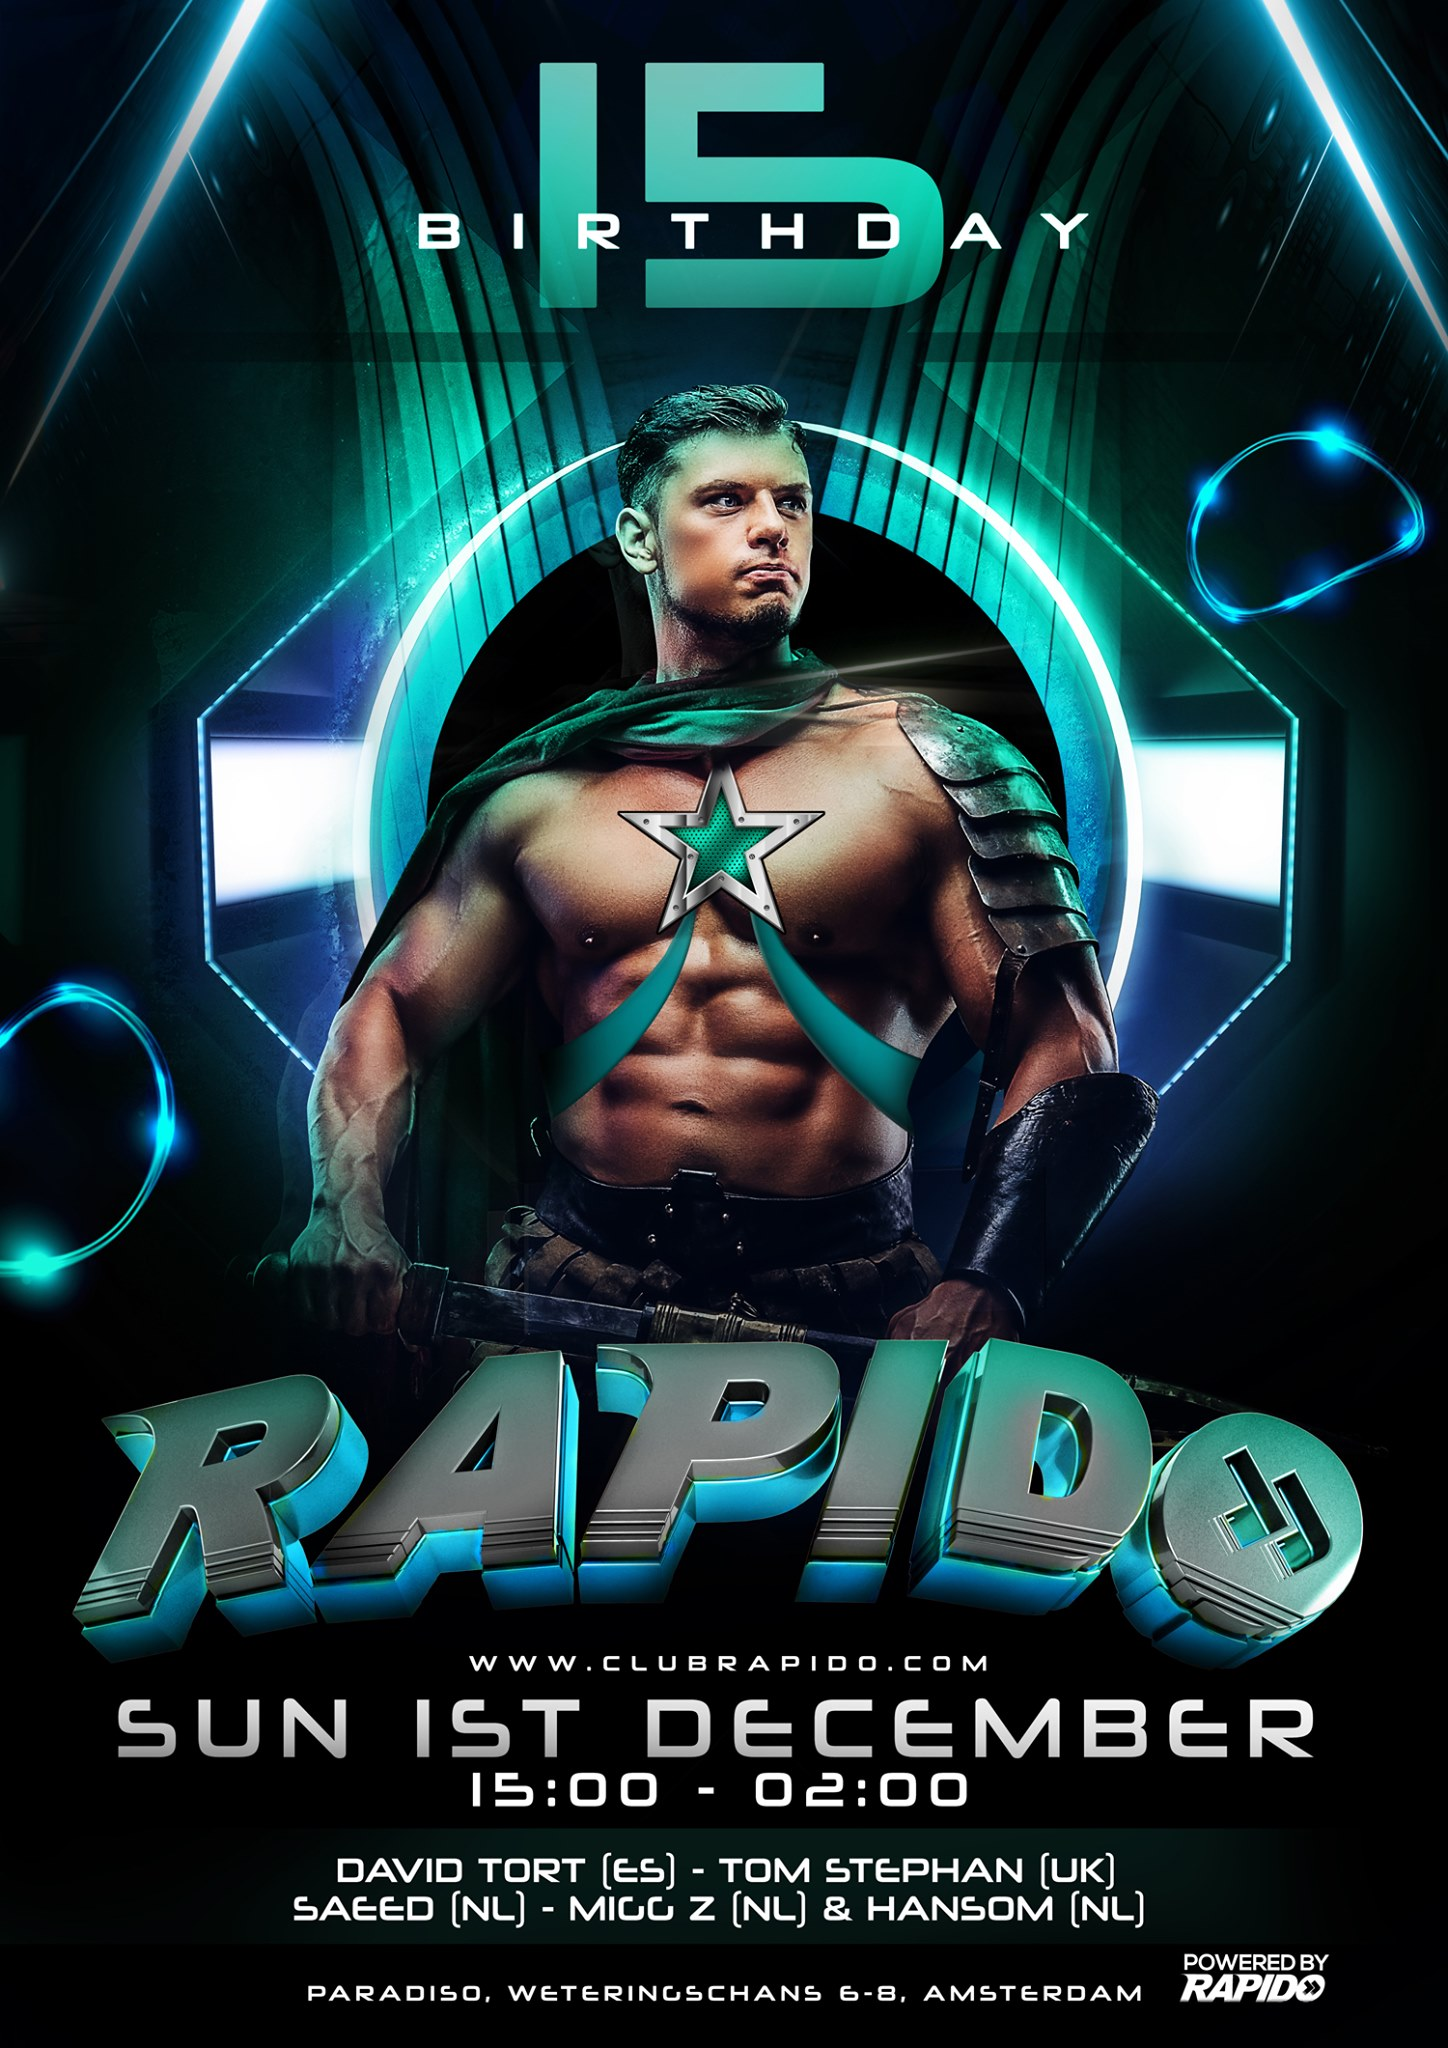 Rapido – the 15th Birthday - Gay Dance Circuit House Party